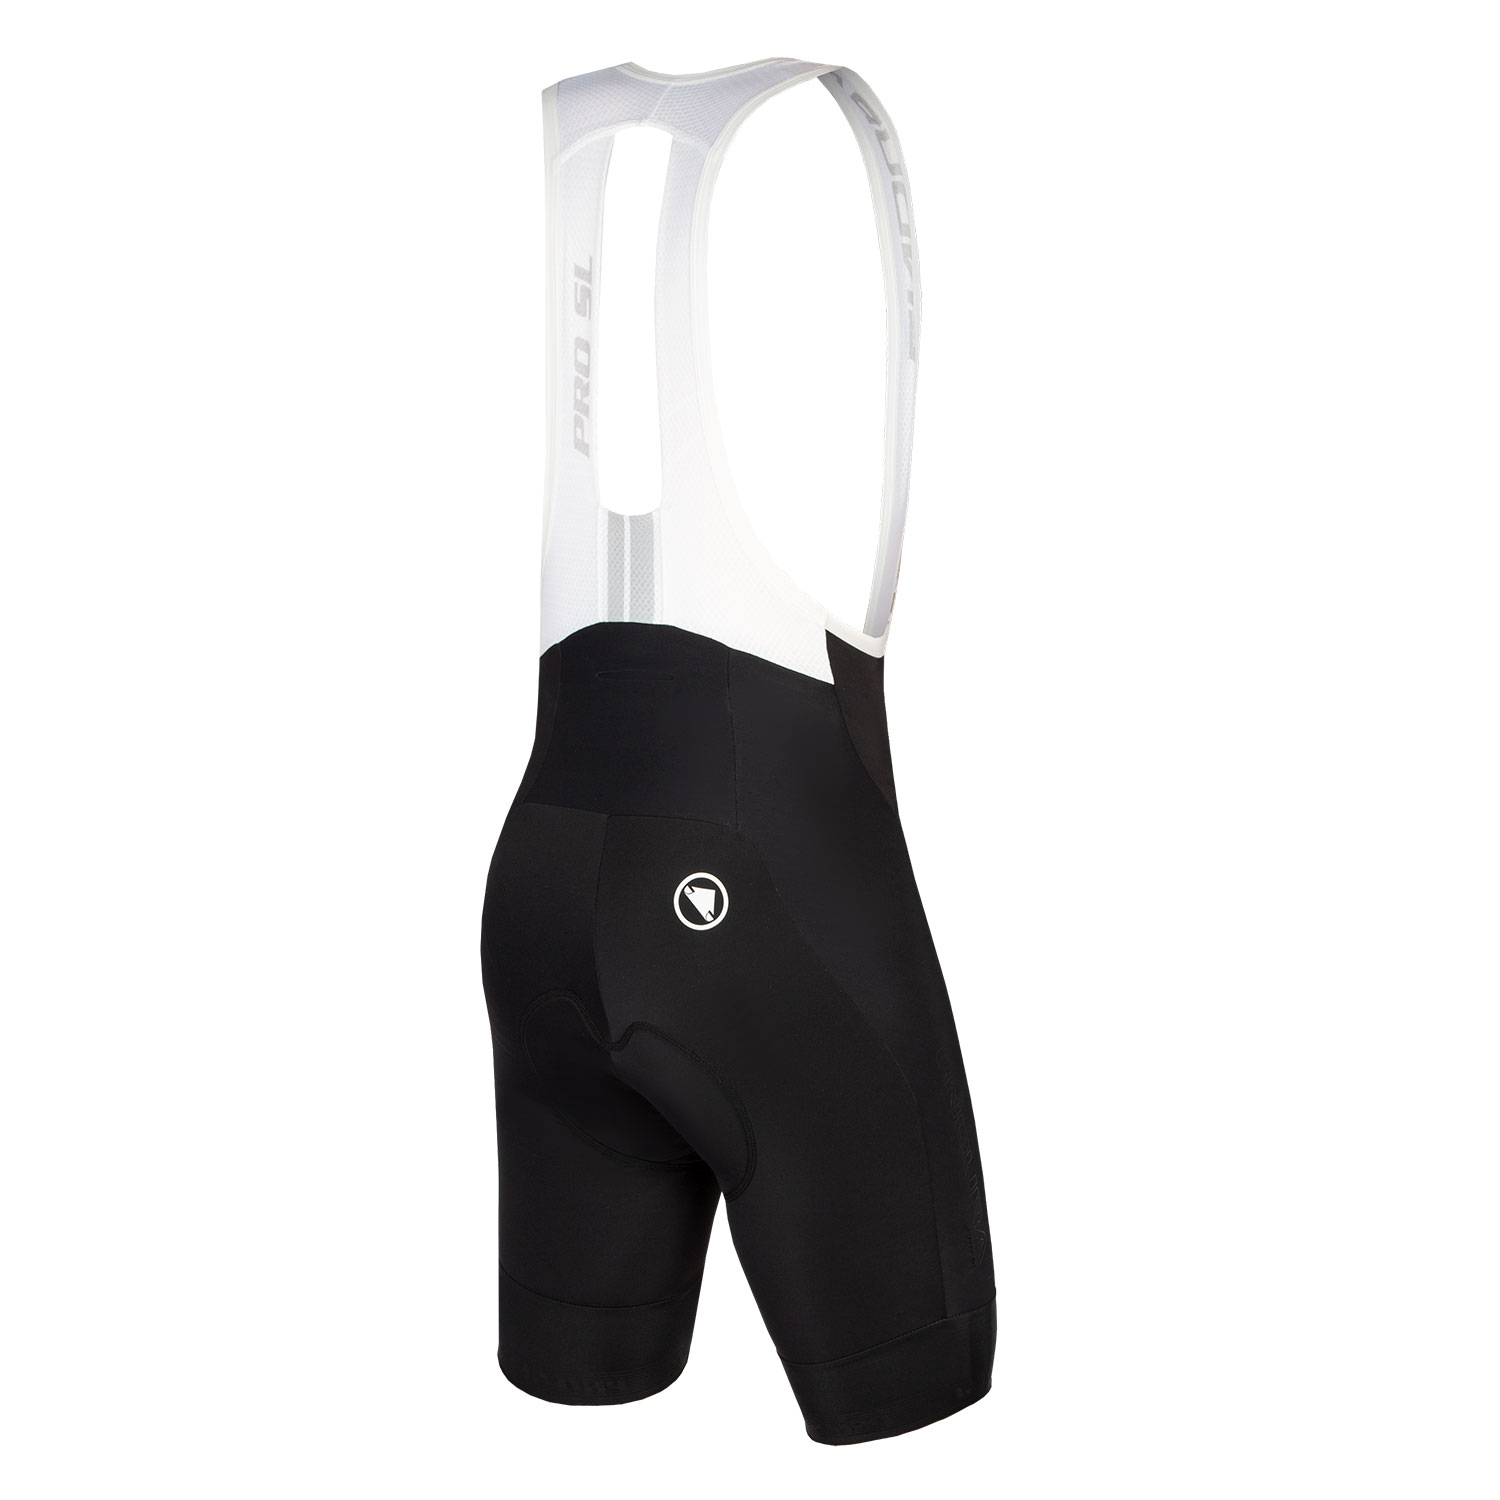 Pro SL Bibshort II (medium-pad) Black